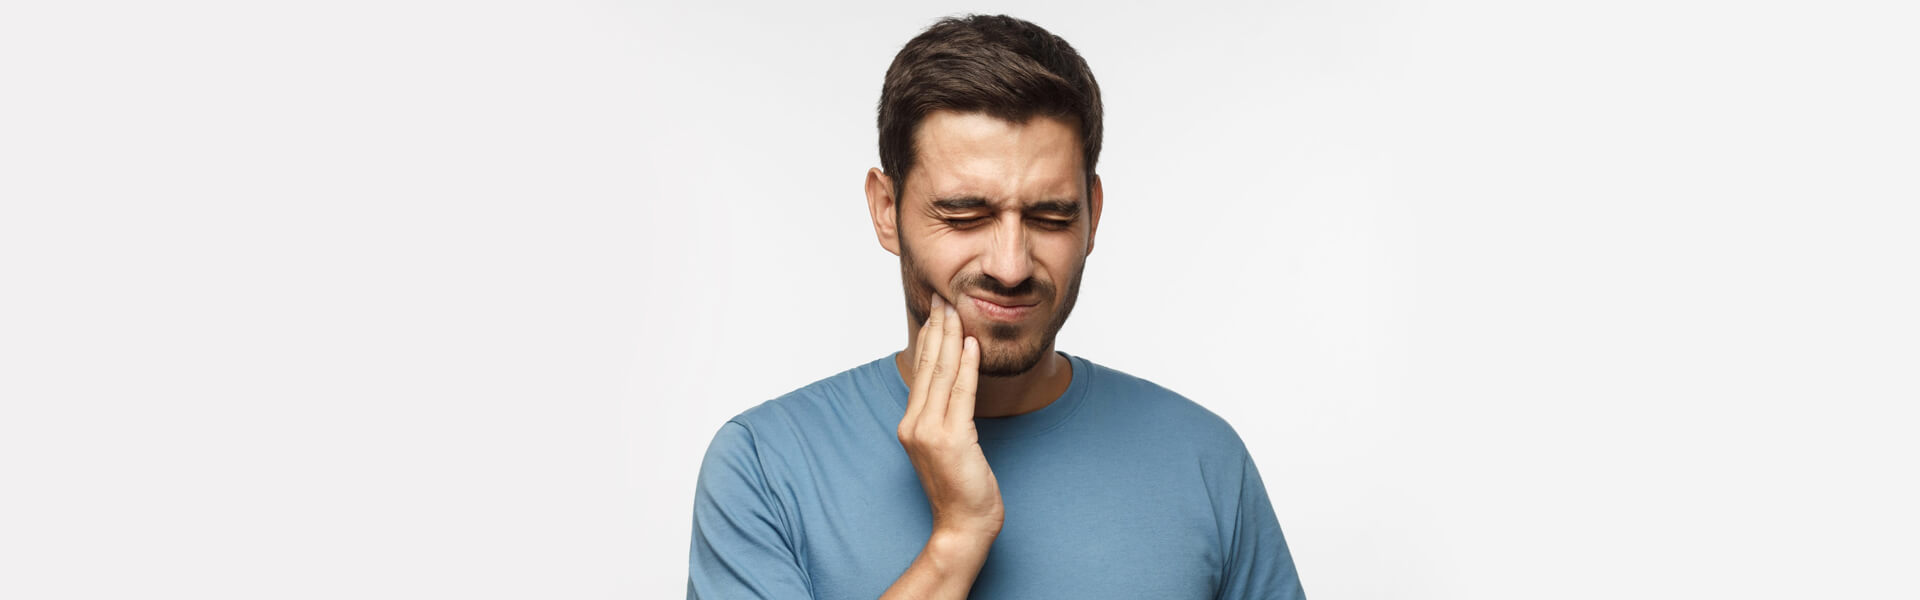 Common Dental Issues Treated in Emergency Dentistry